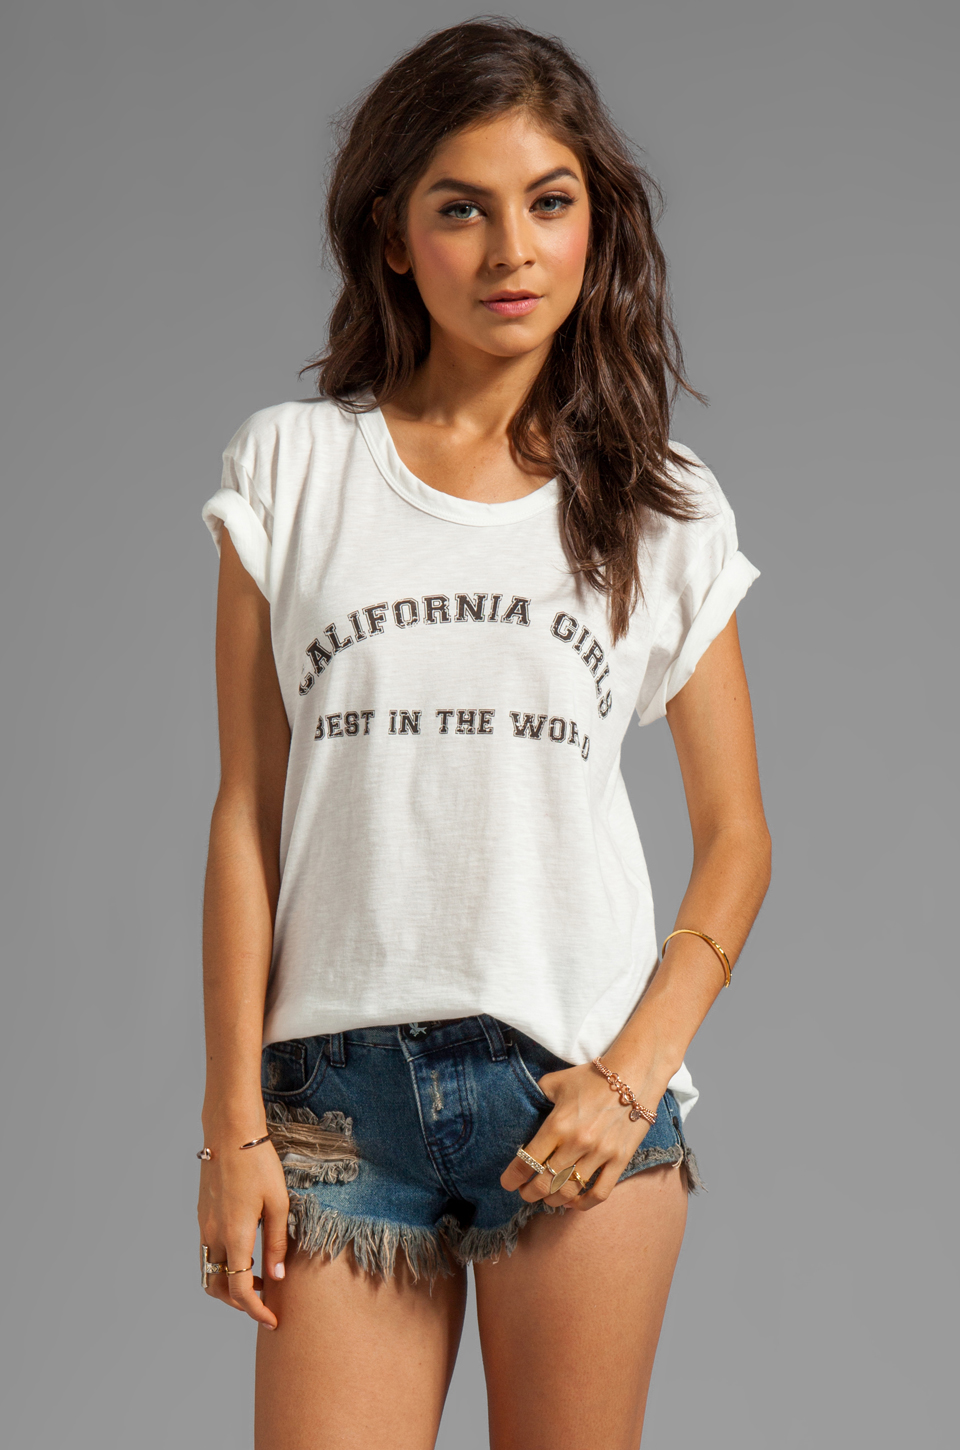 LNA California Girls Tee in White